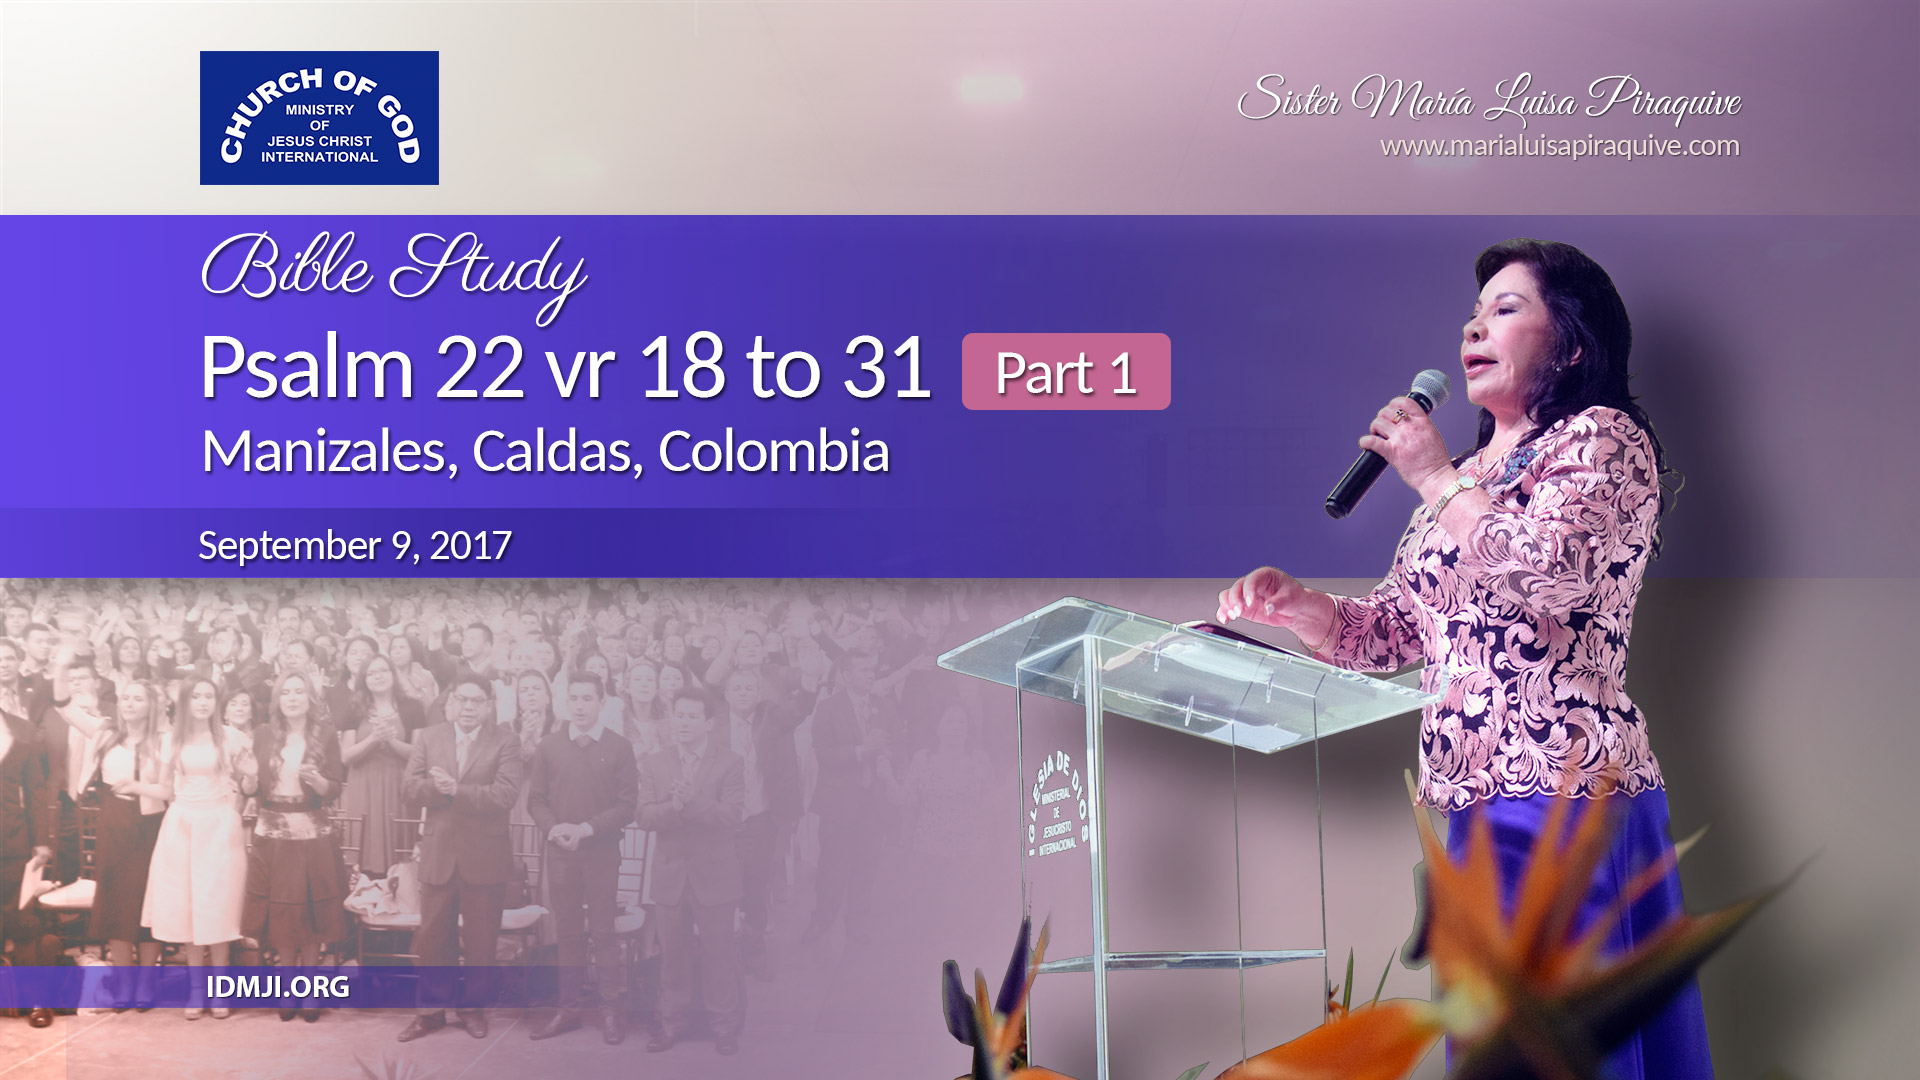 Psalm 22 vr 18 to 31 – Part 1 (Manizales)